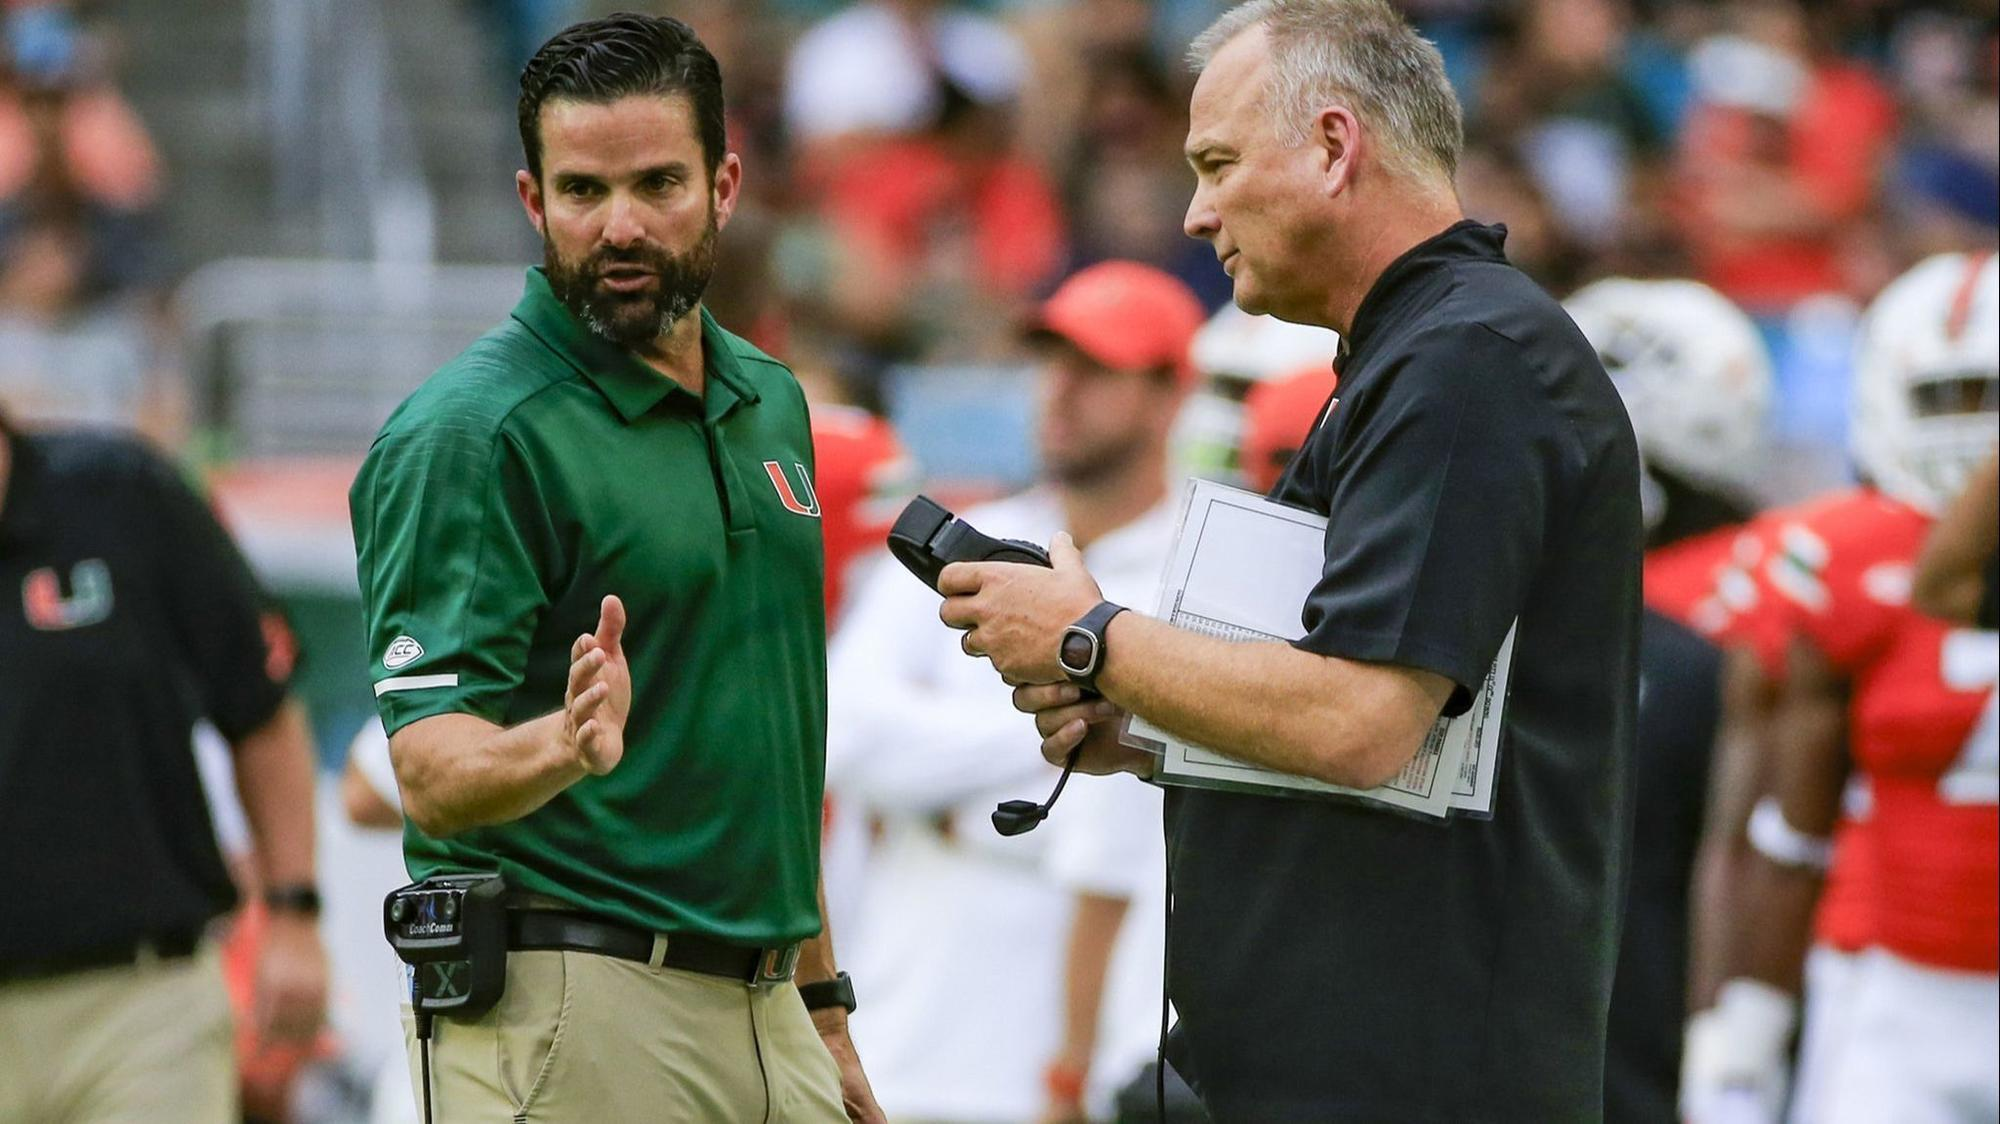 new hurricanes coach manny diaz on whirlwind that resulted in his